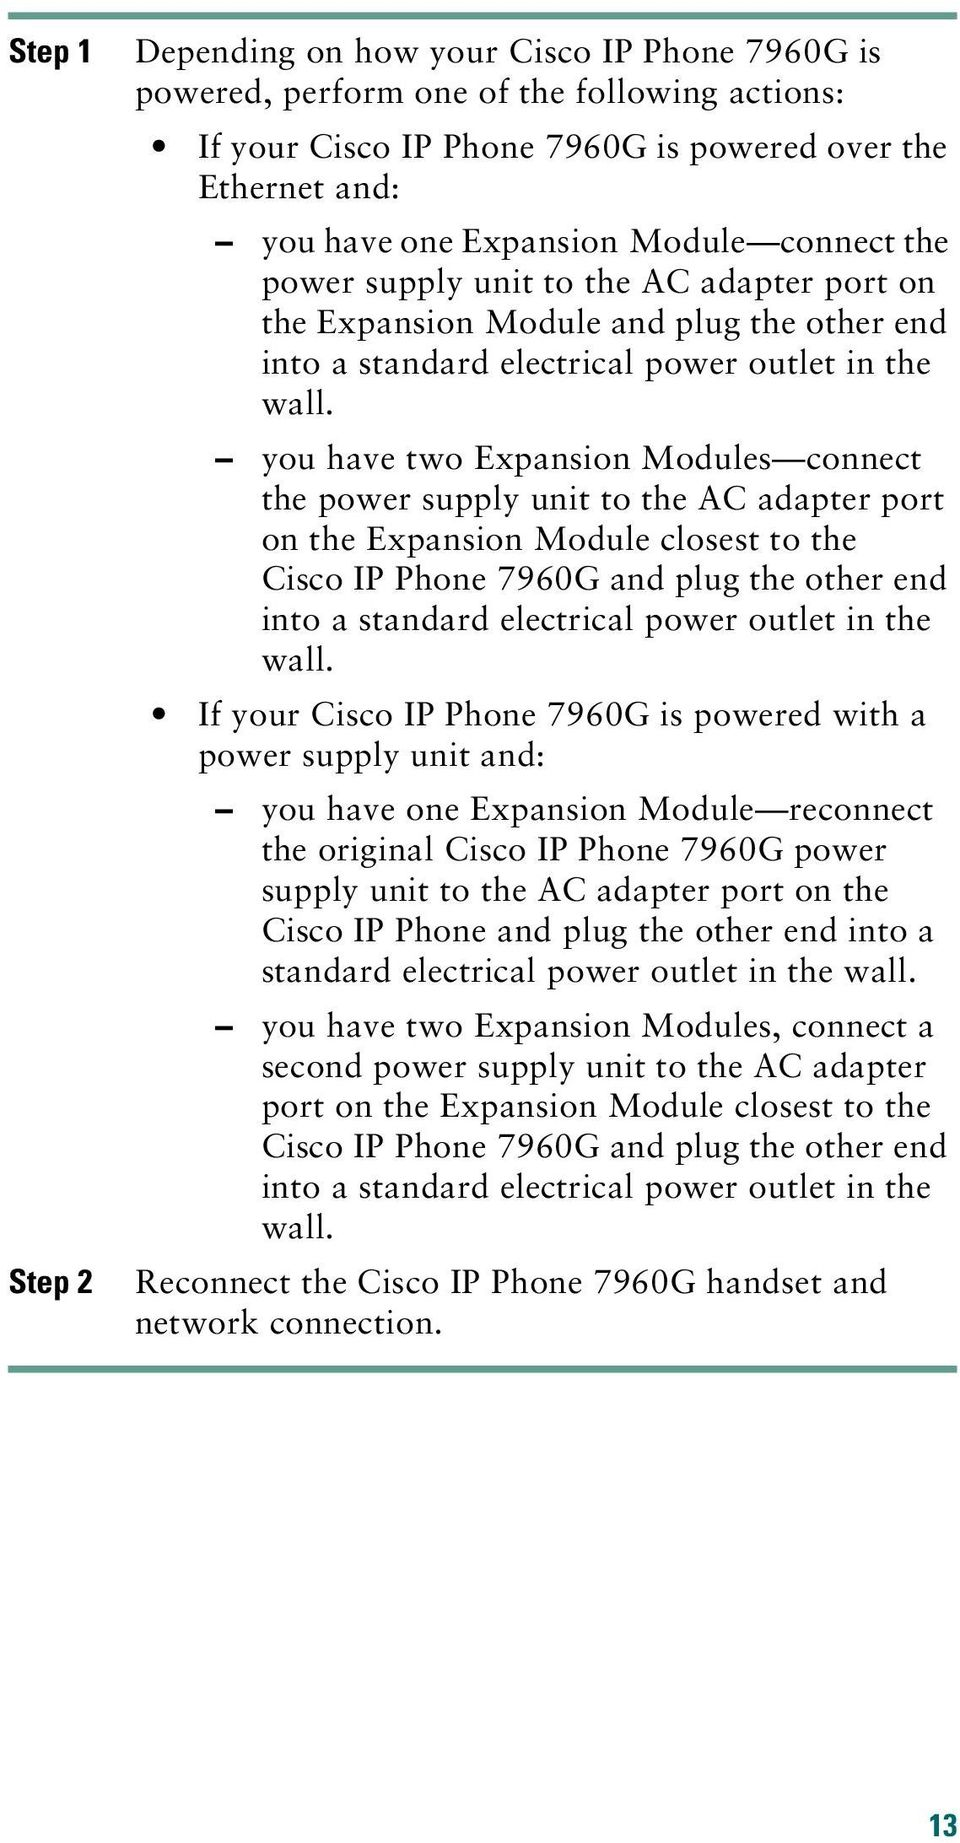 you have two Expansion Modules connect the power supply unit to the AC adapter port on the Expansion Module closest to the Cisco IP Phone 7960G and plug the other end into a standard electrical power